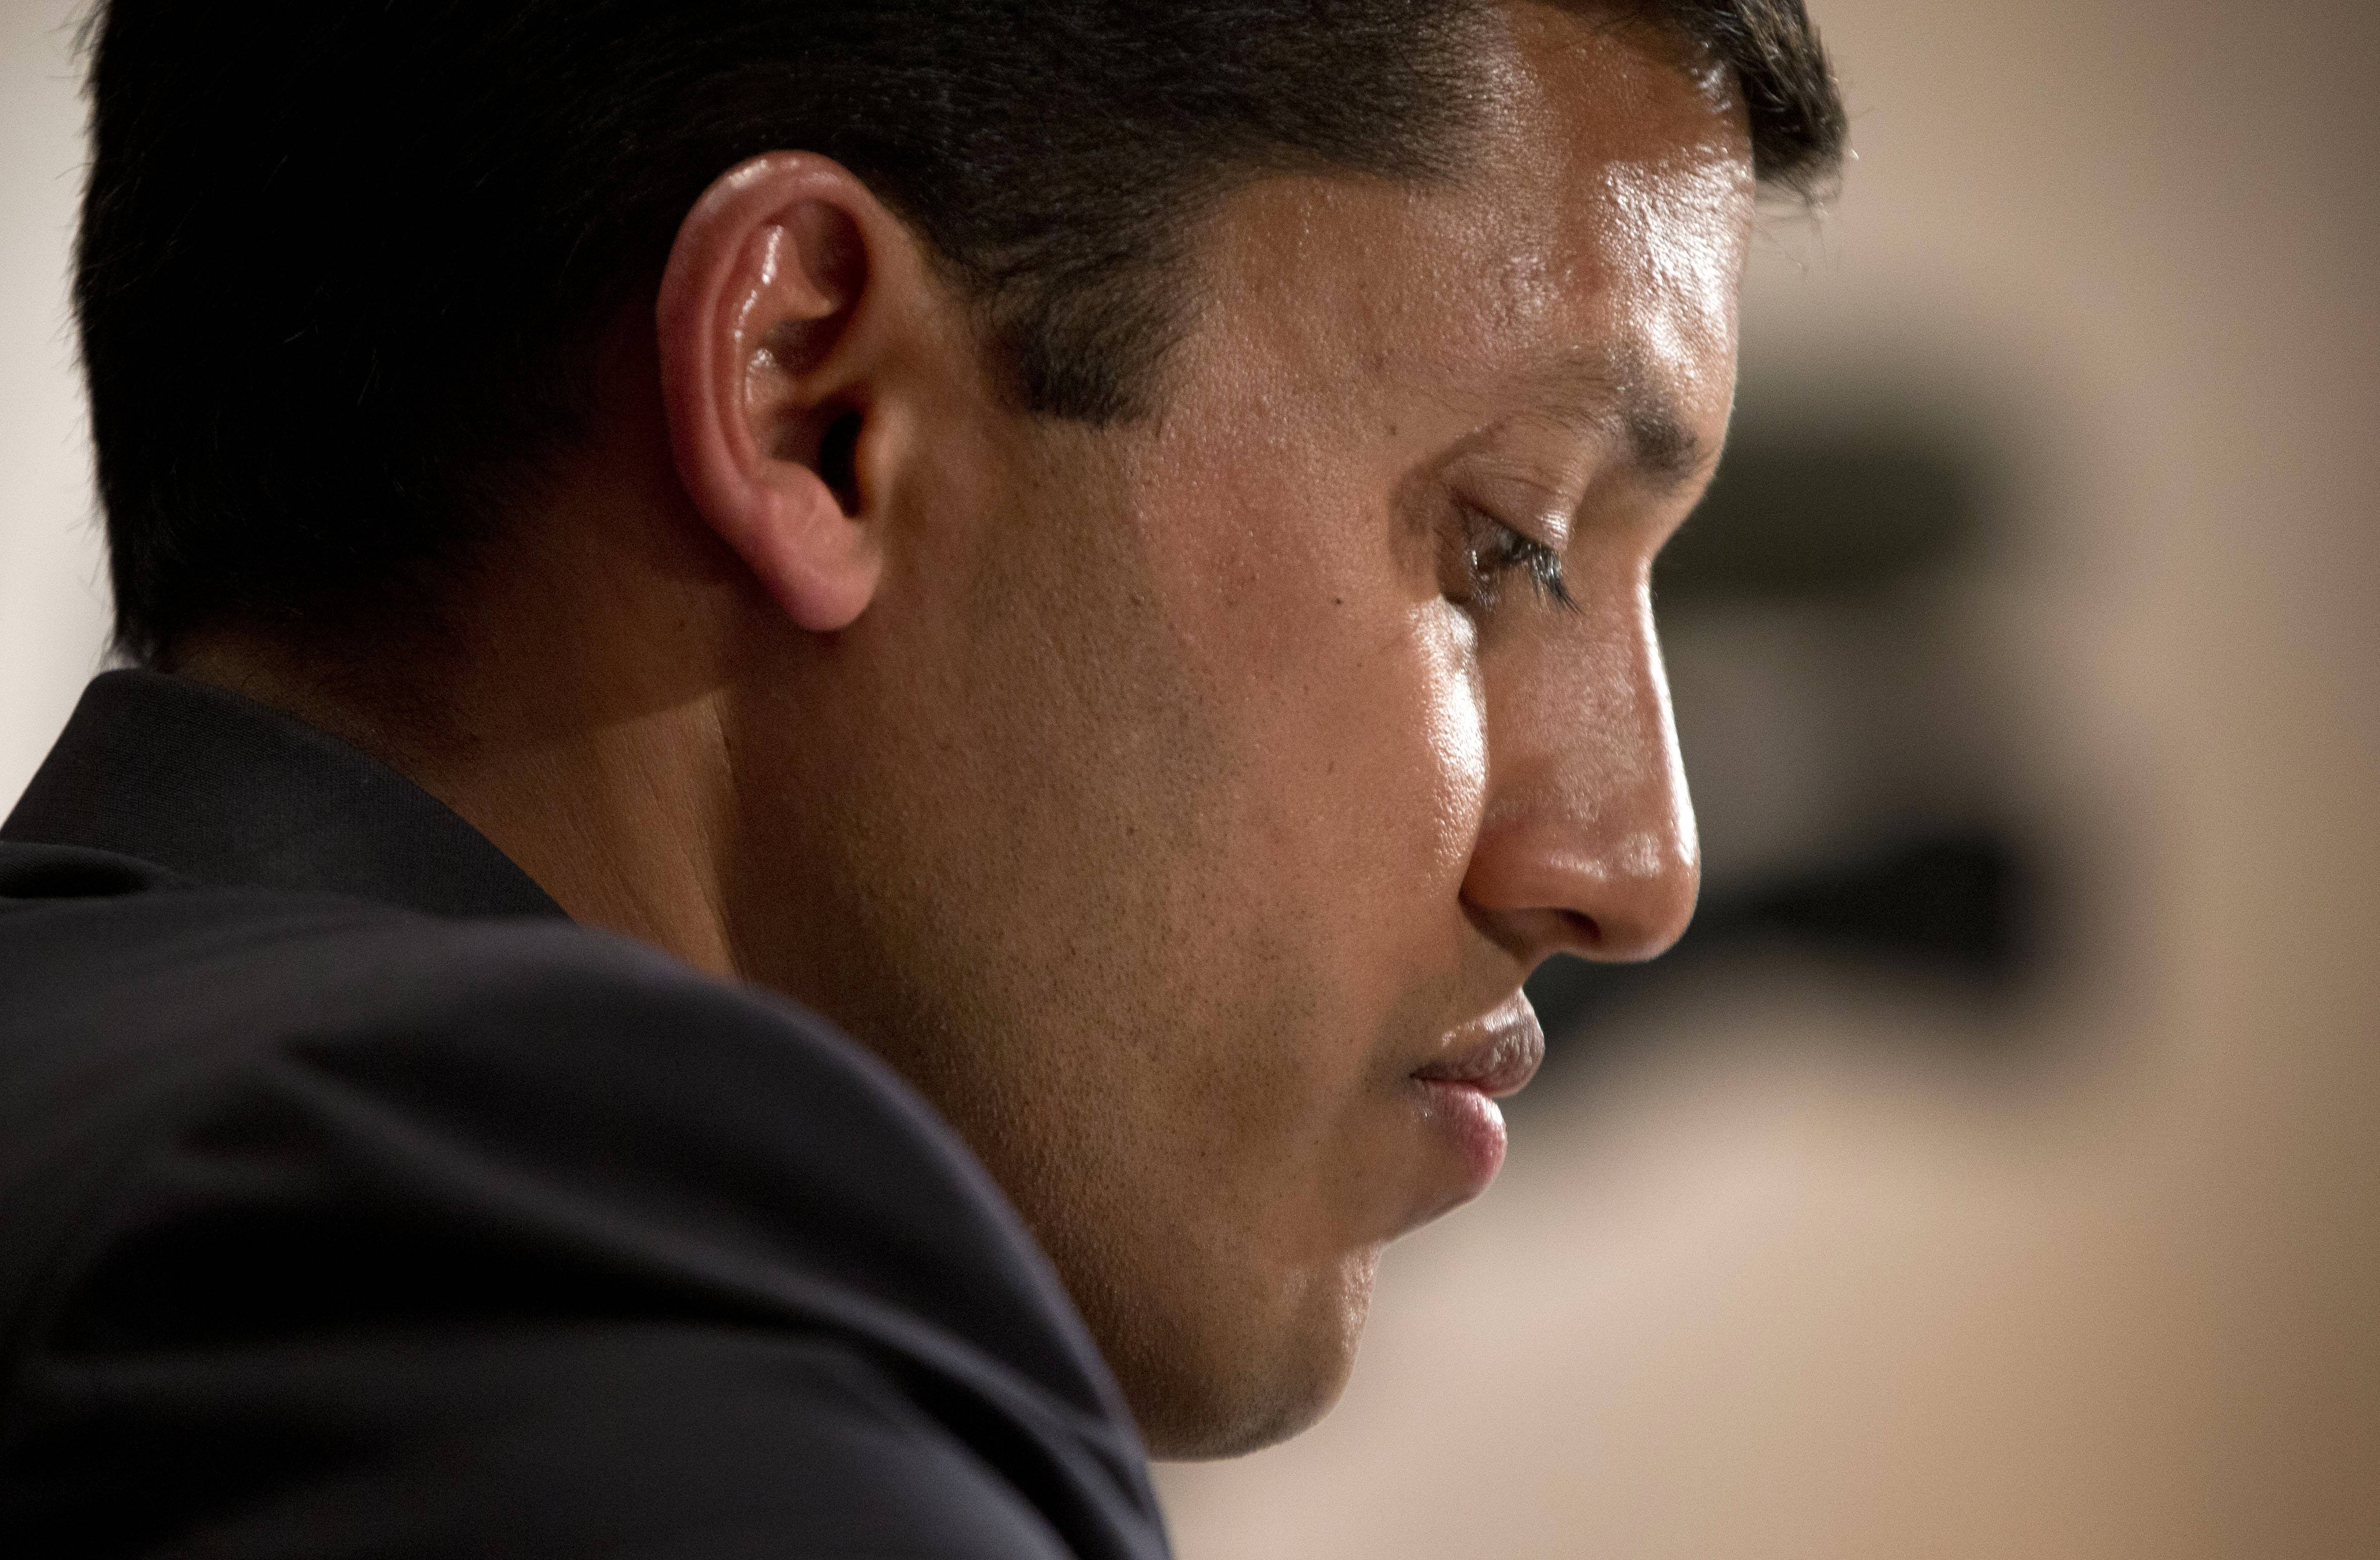 US Agency for International Development (USAID) Administrator Dr. Rajiv Shah pauses testifies before the Senate subcommittee on State, Foreign Operations and Related Programs on the agency's secret 'Cuban Twitter', a social media network built to stir unrest in the communist island.